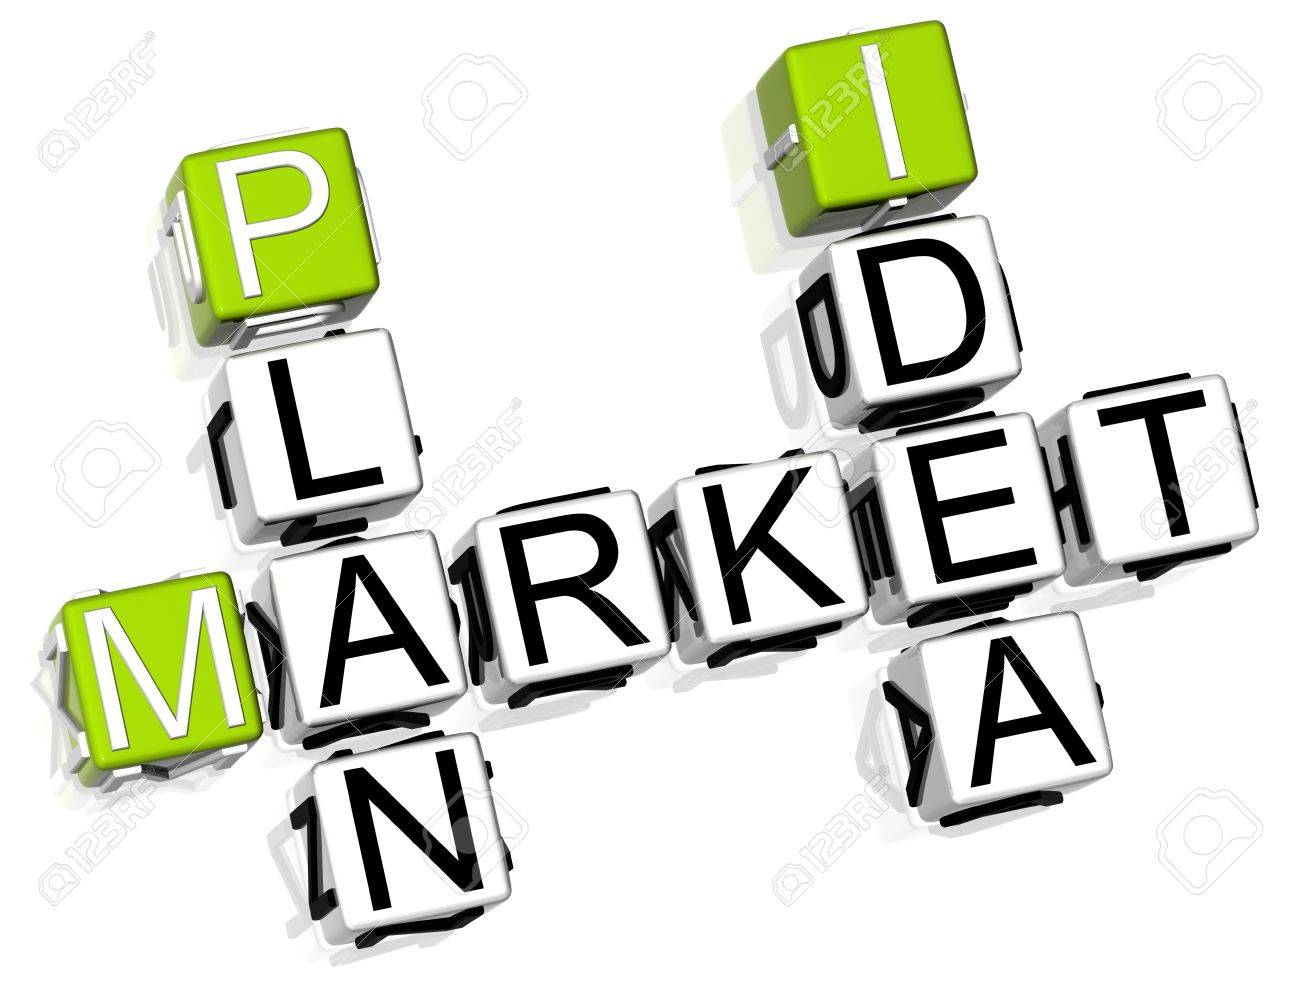 3D Market Plan Idea Crossword on white background Stock Photo - 8901648